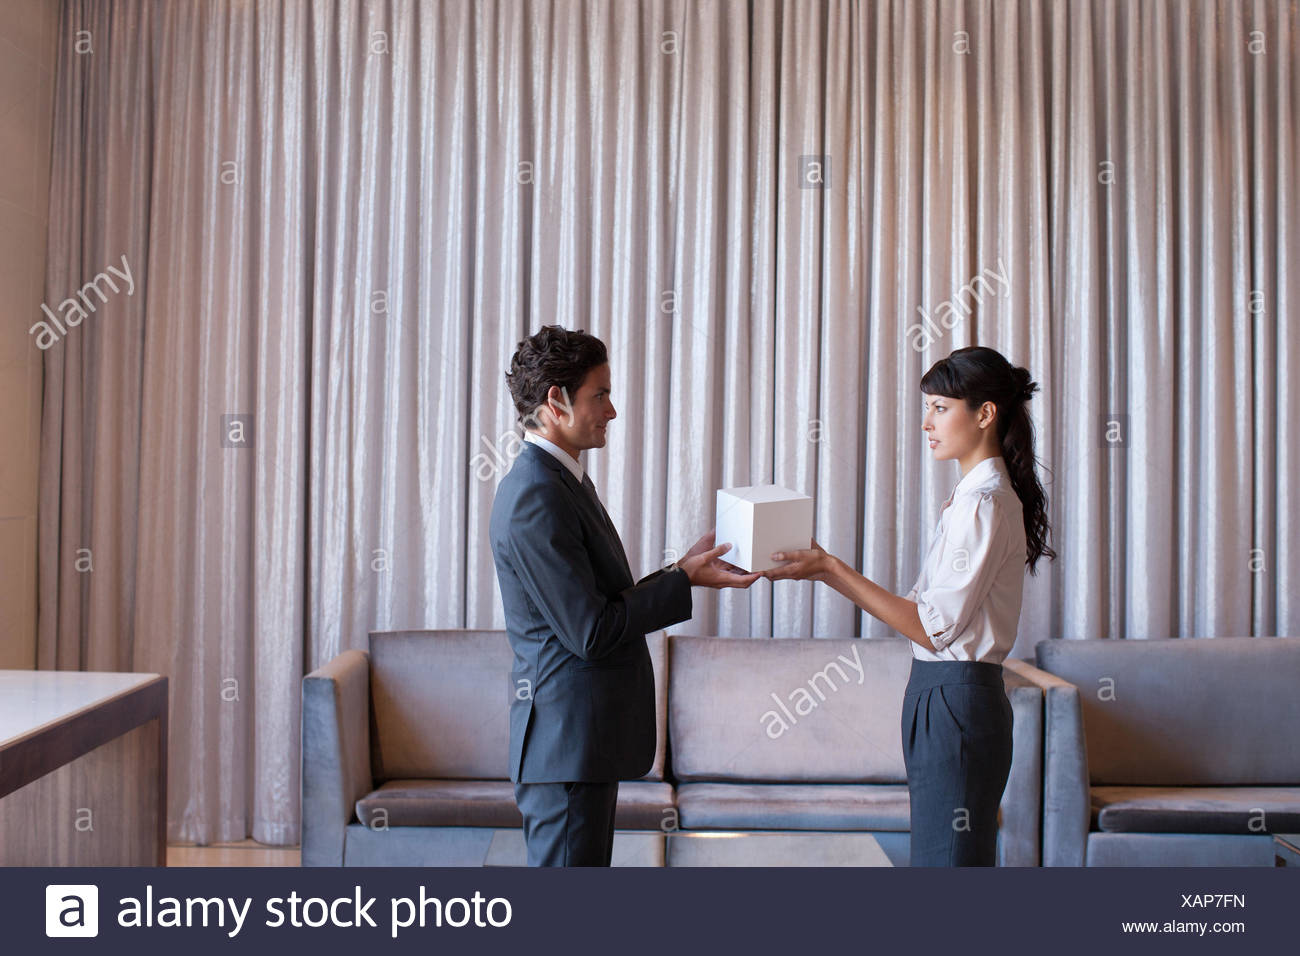 Business people holding white cube in hotel lobby - Stock Image